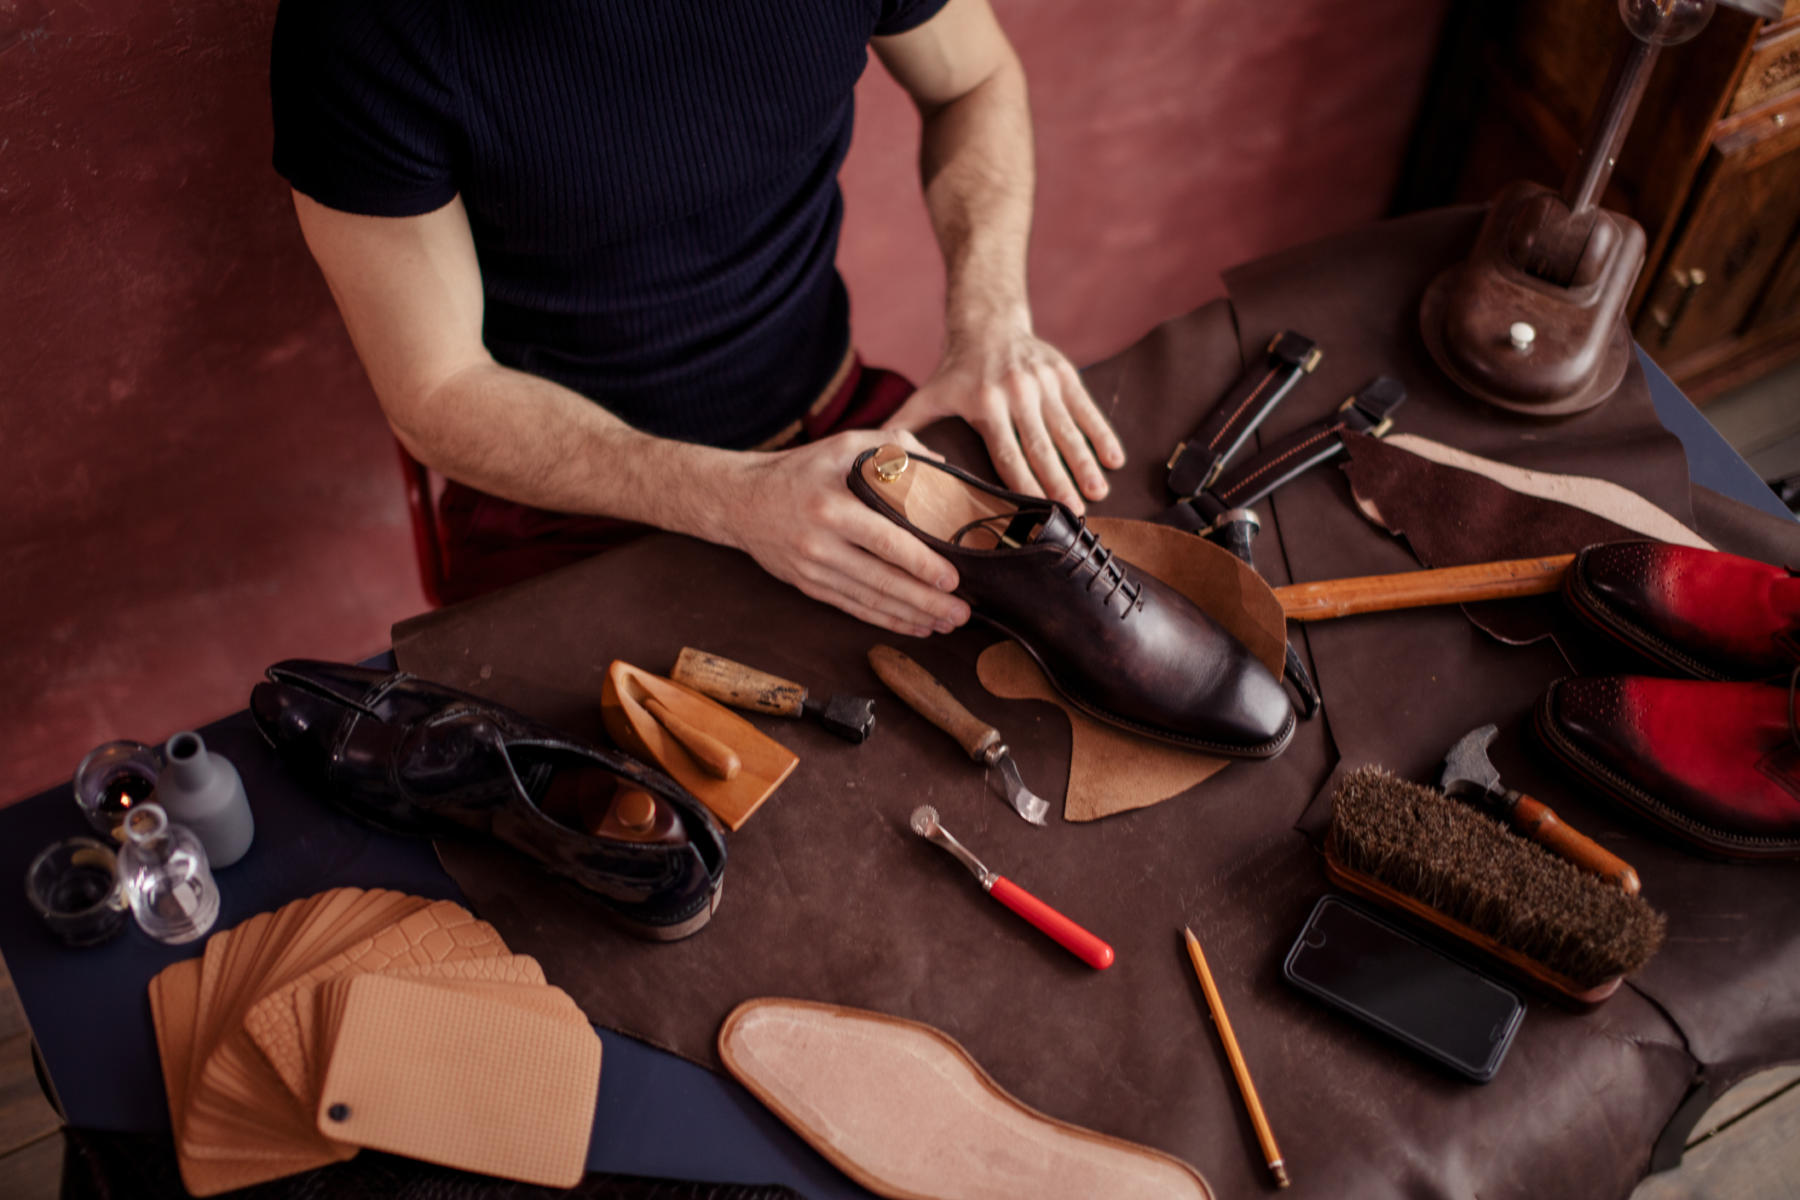 About European Confederation of the Footwear Industry